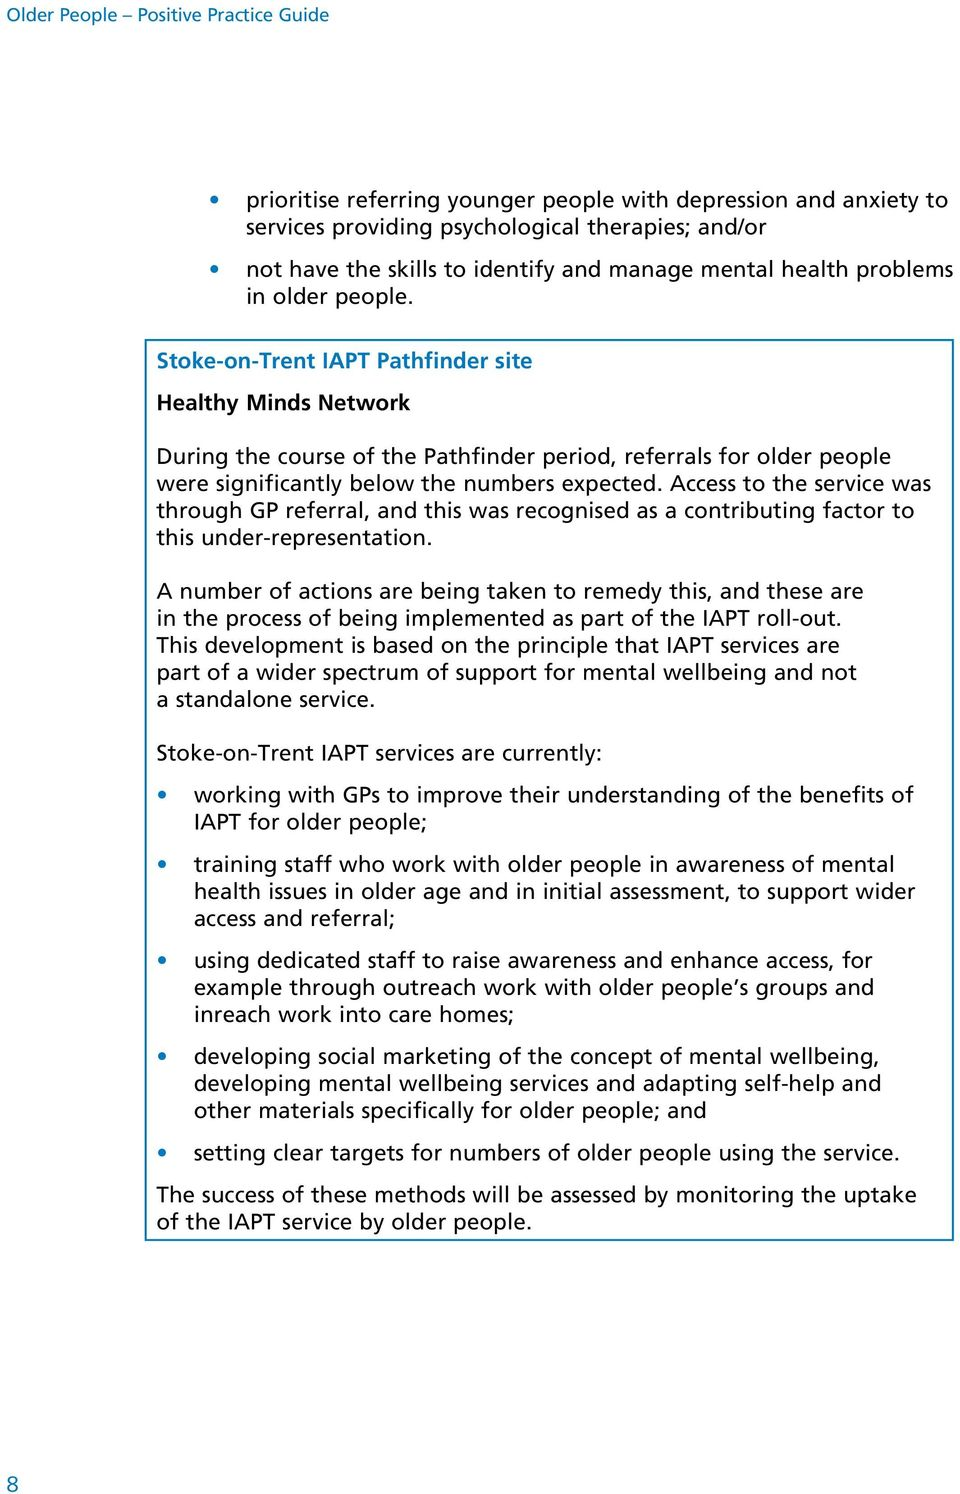 Stoke-on-Trent IAPT Pathfinder site Healthy Minds Network During the course of the Pathfinder period, referrals for older people were significantly below the numbers expected.